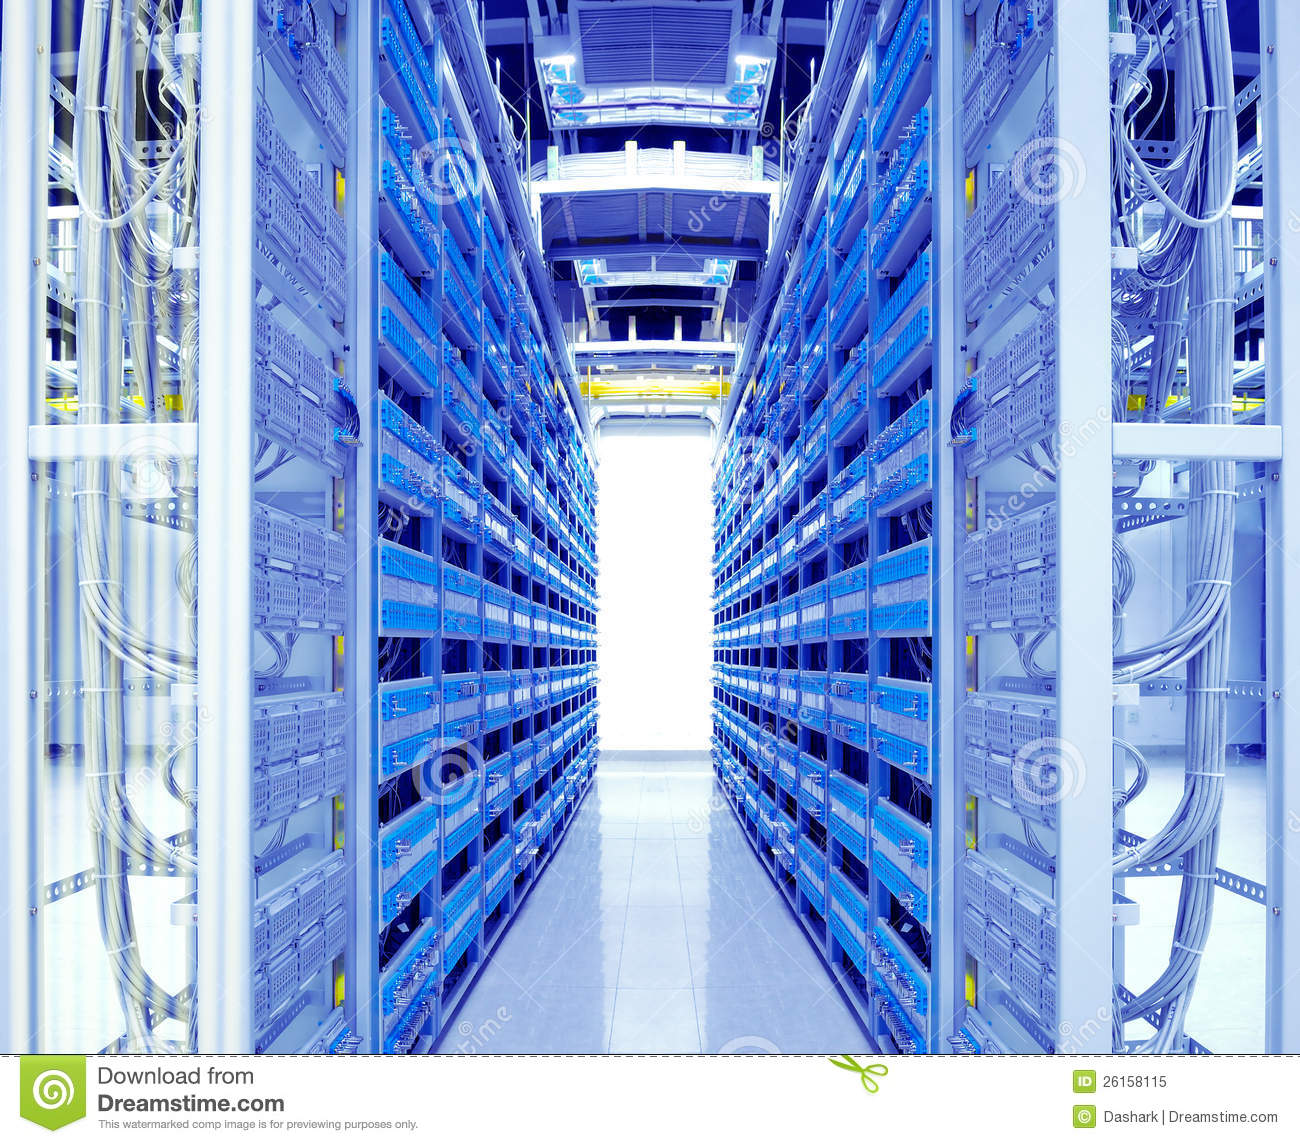 shot of network cables and servers in a technology data center.